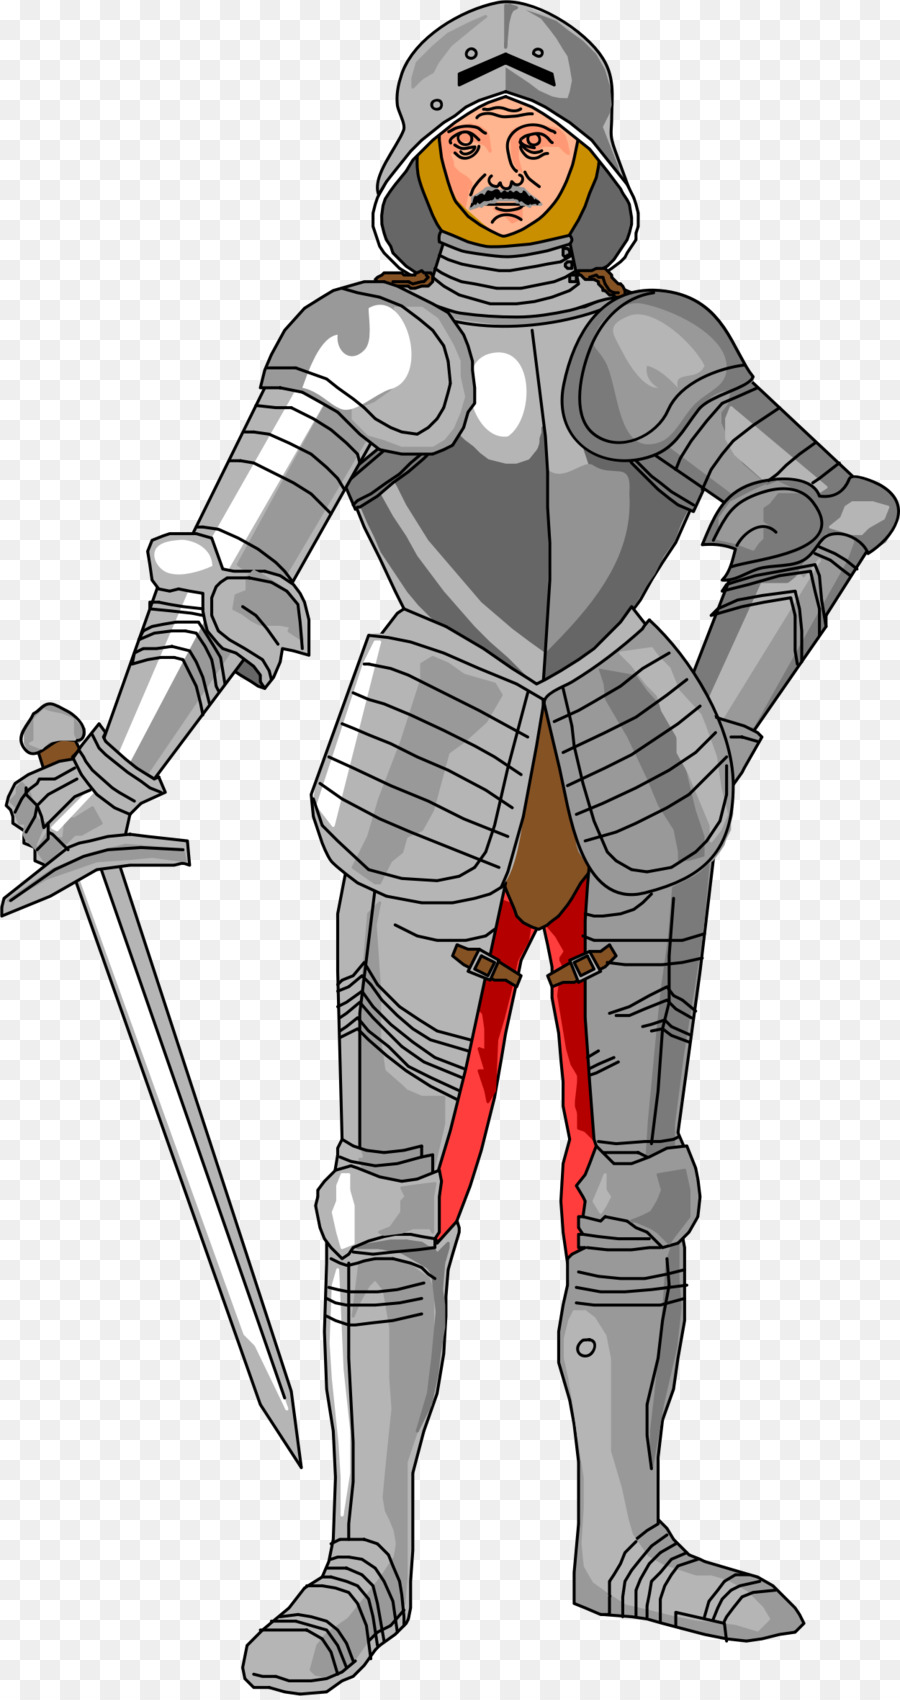 graphic freeuse download Medieval knight clipart. Superhero cartoon